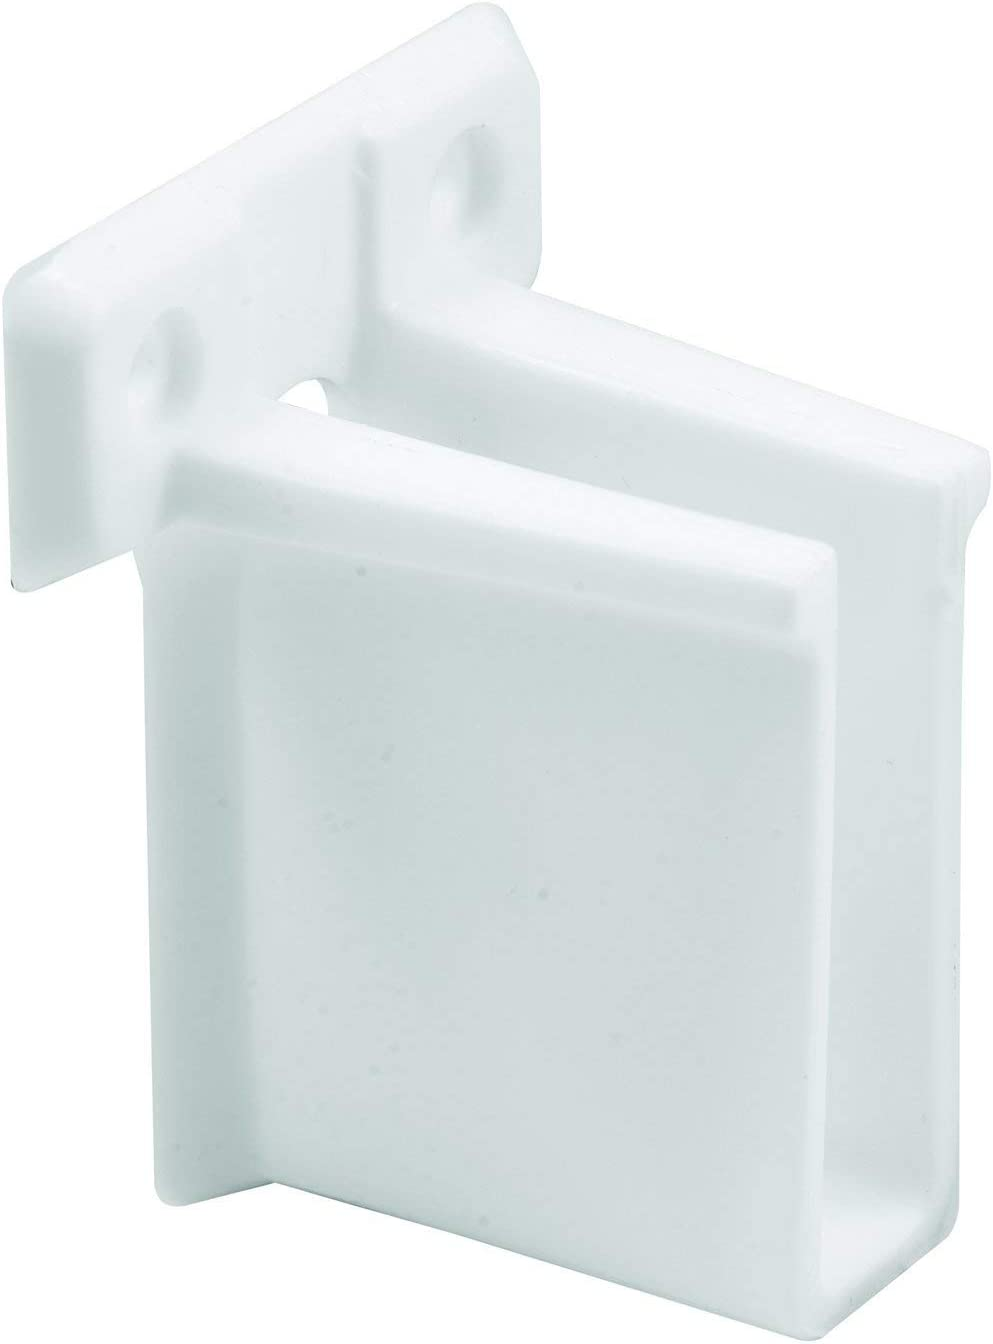 MP7016 Wire Shelf End Bracket Pack of 6 New Version 6 Piece White